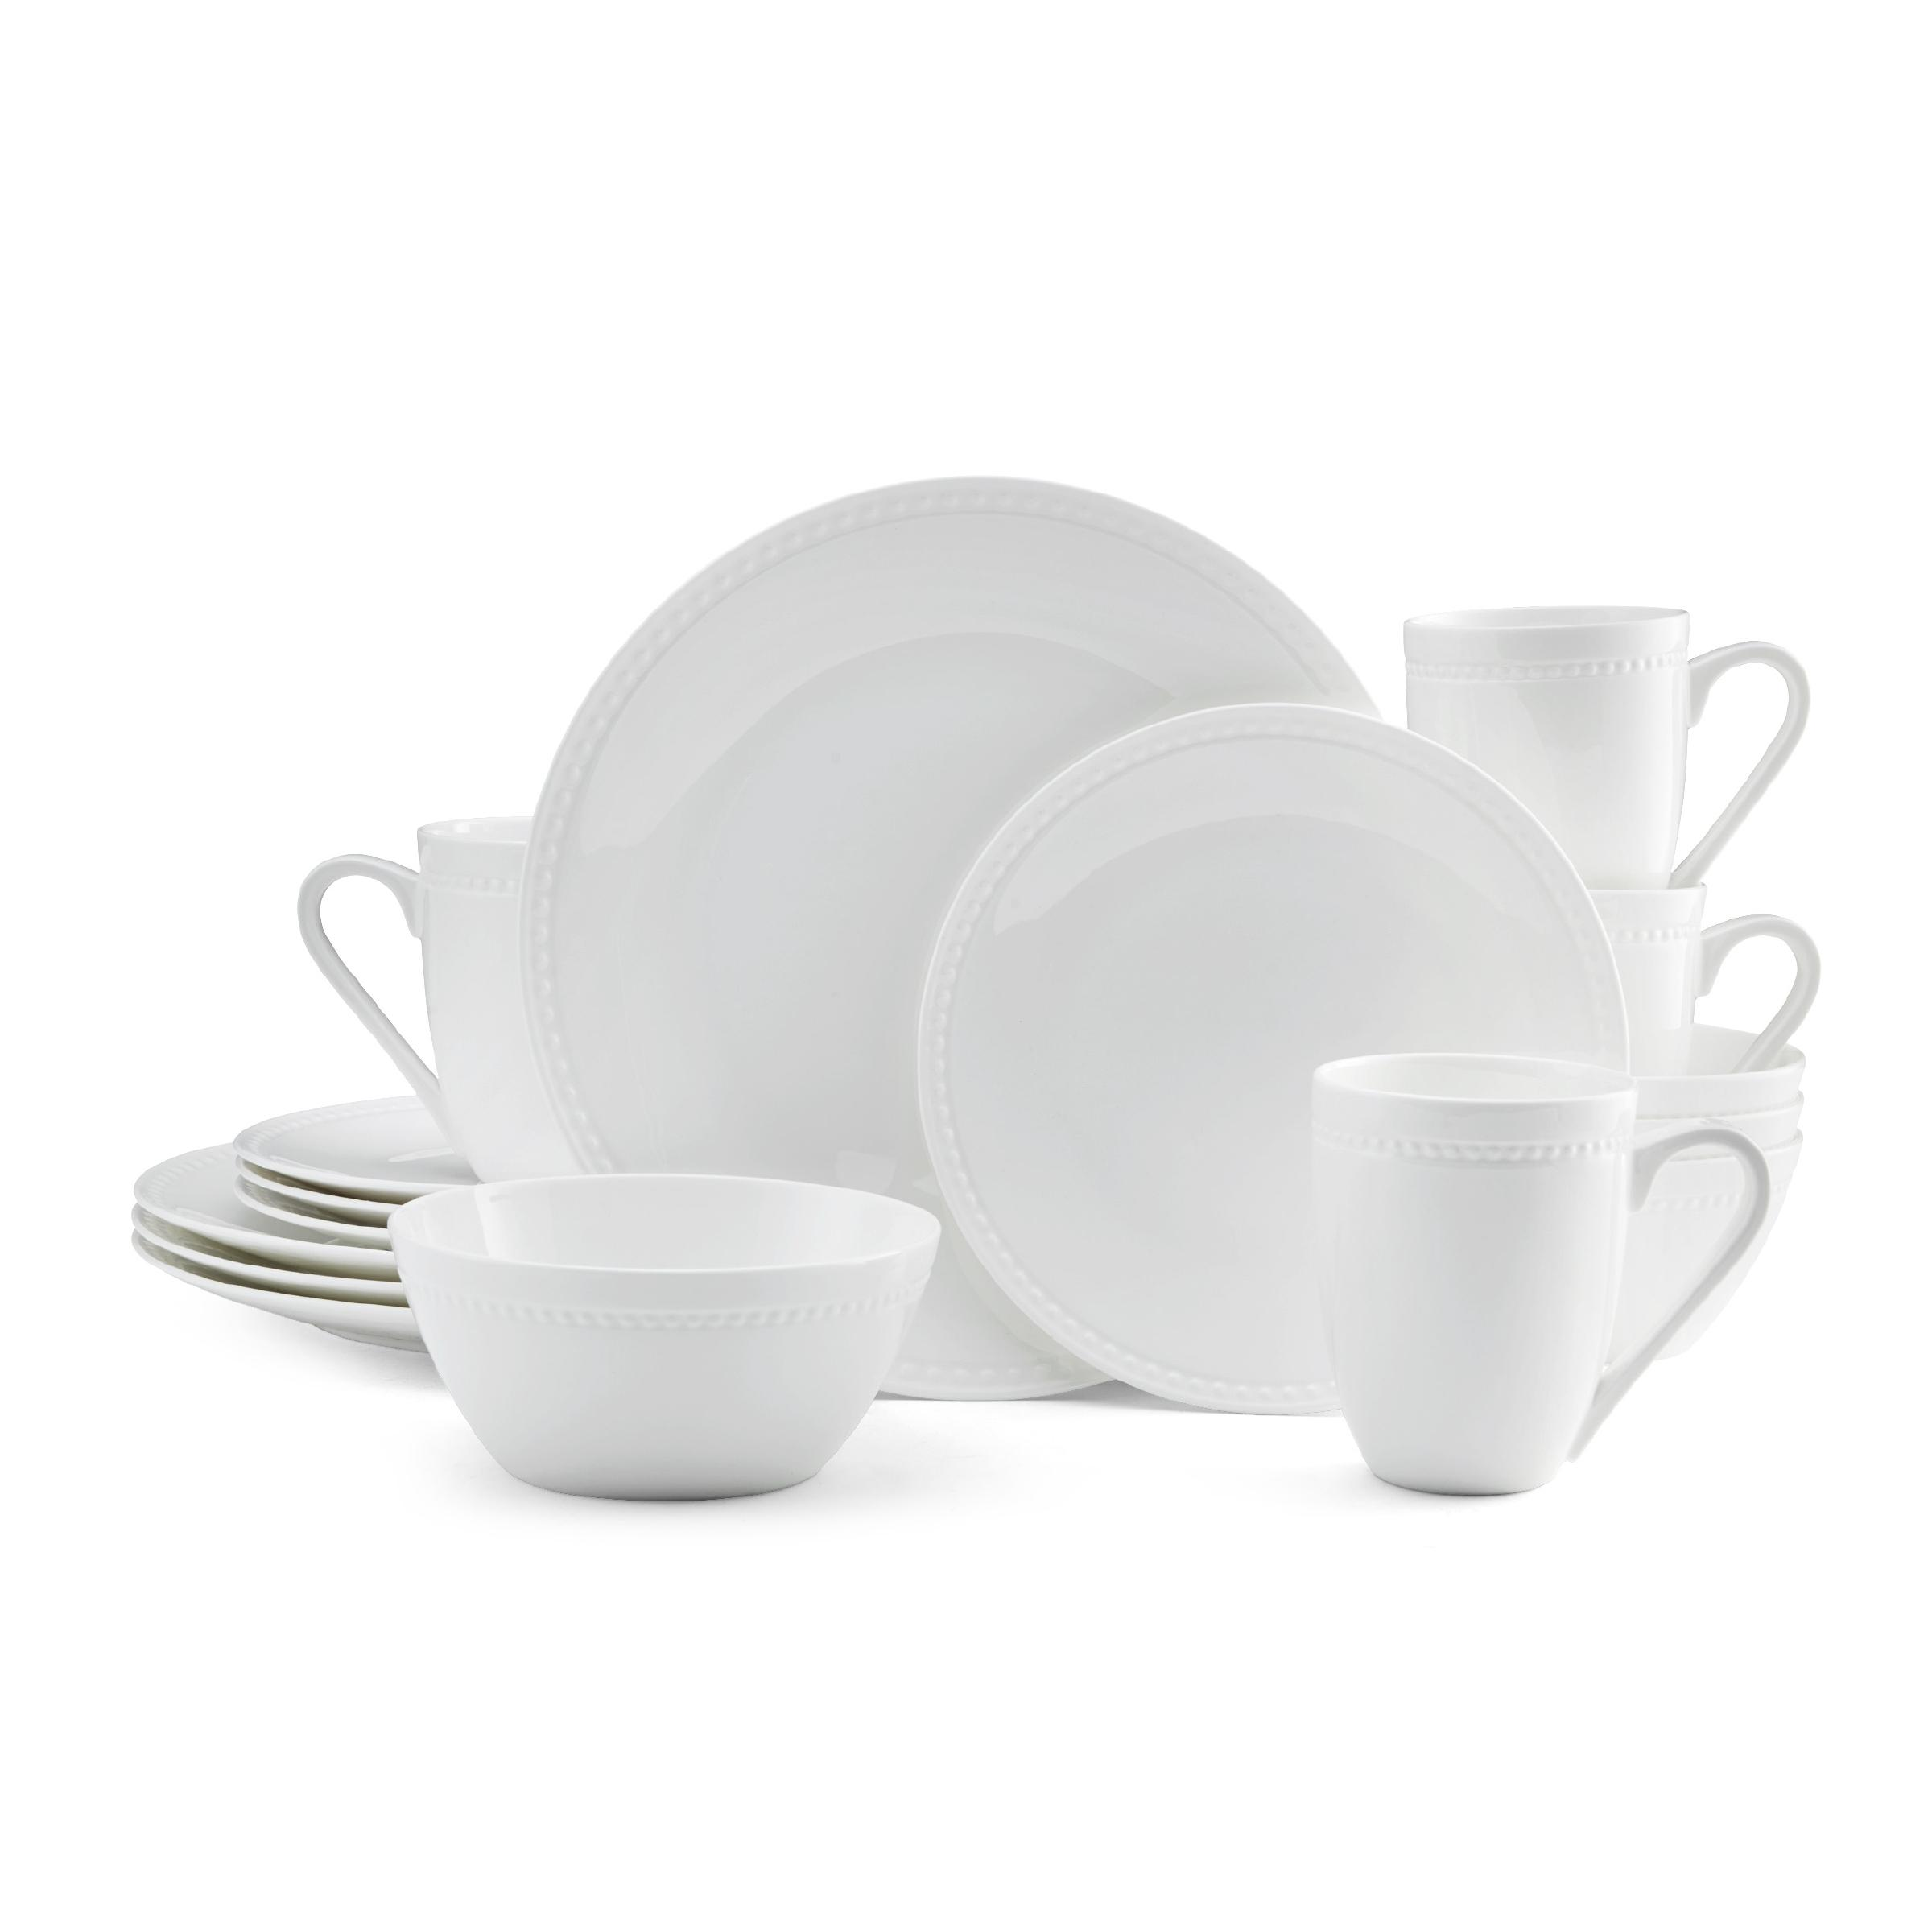 ... fancy plates fine china sets · View larger  sc 1 st  Amazon.com & Amazon.com: Mikasa Delray 16-Piece Bone China Dinnerware Set ...